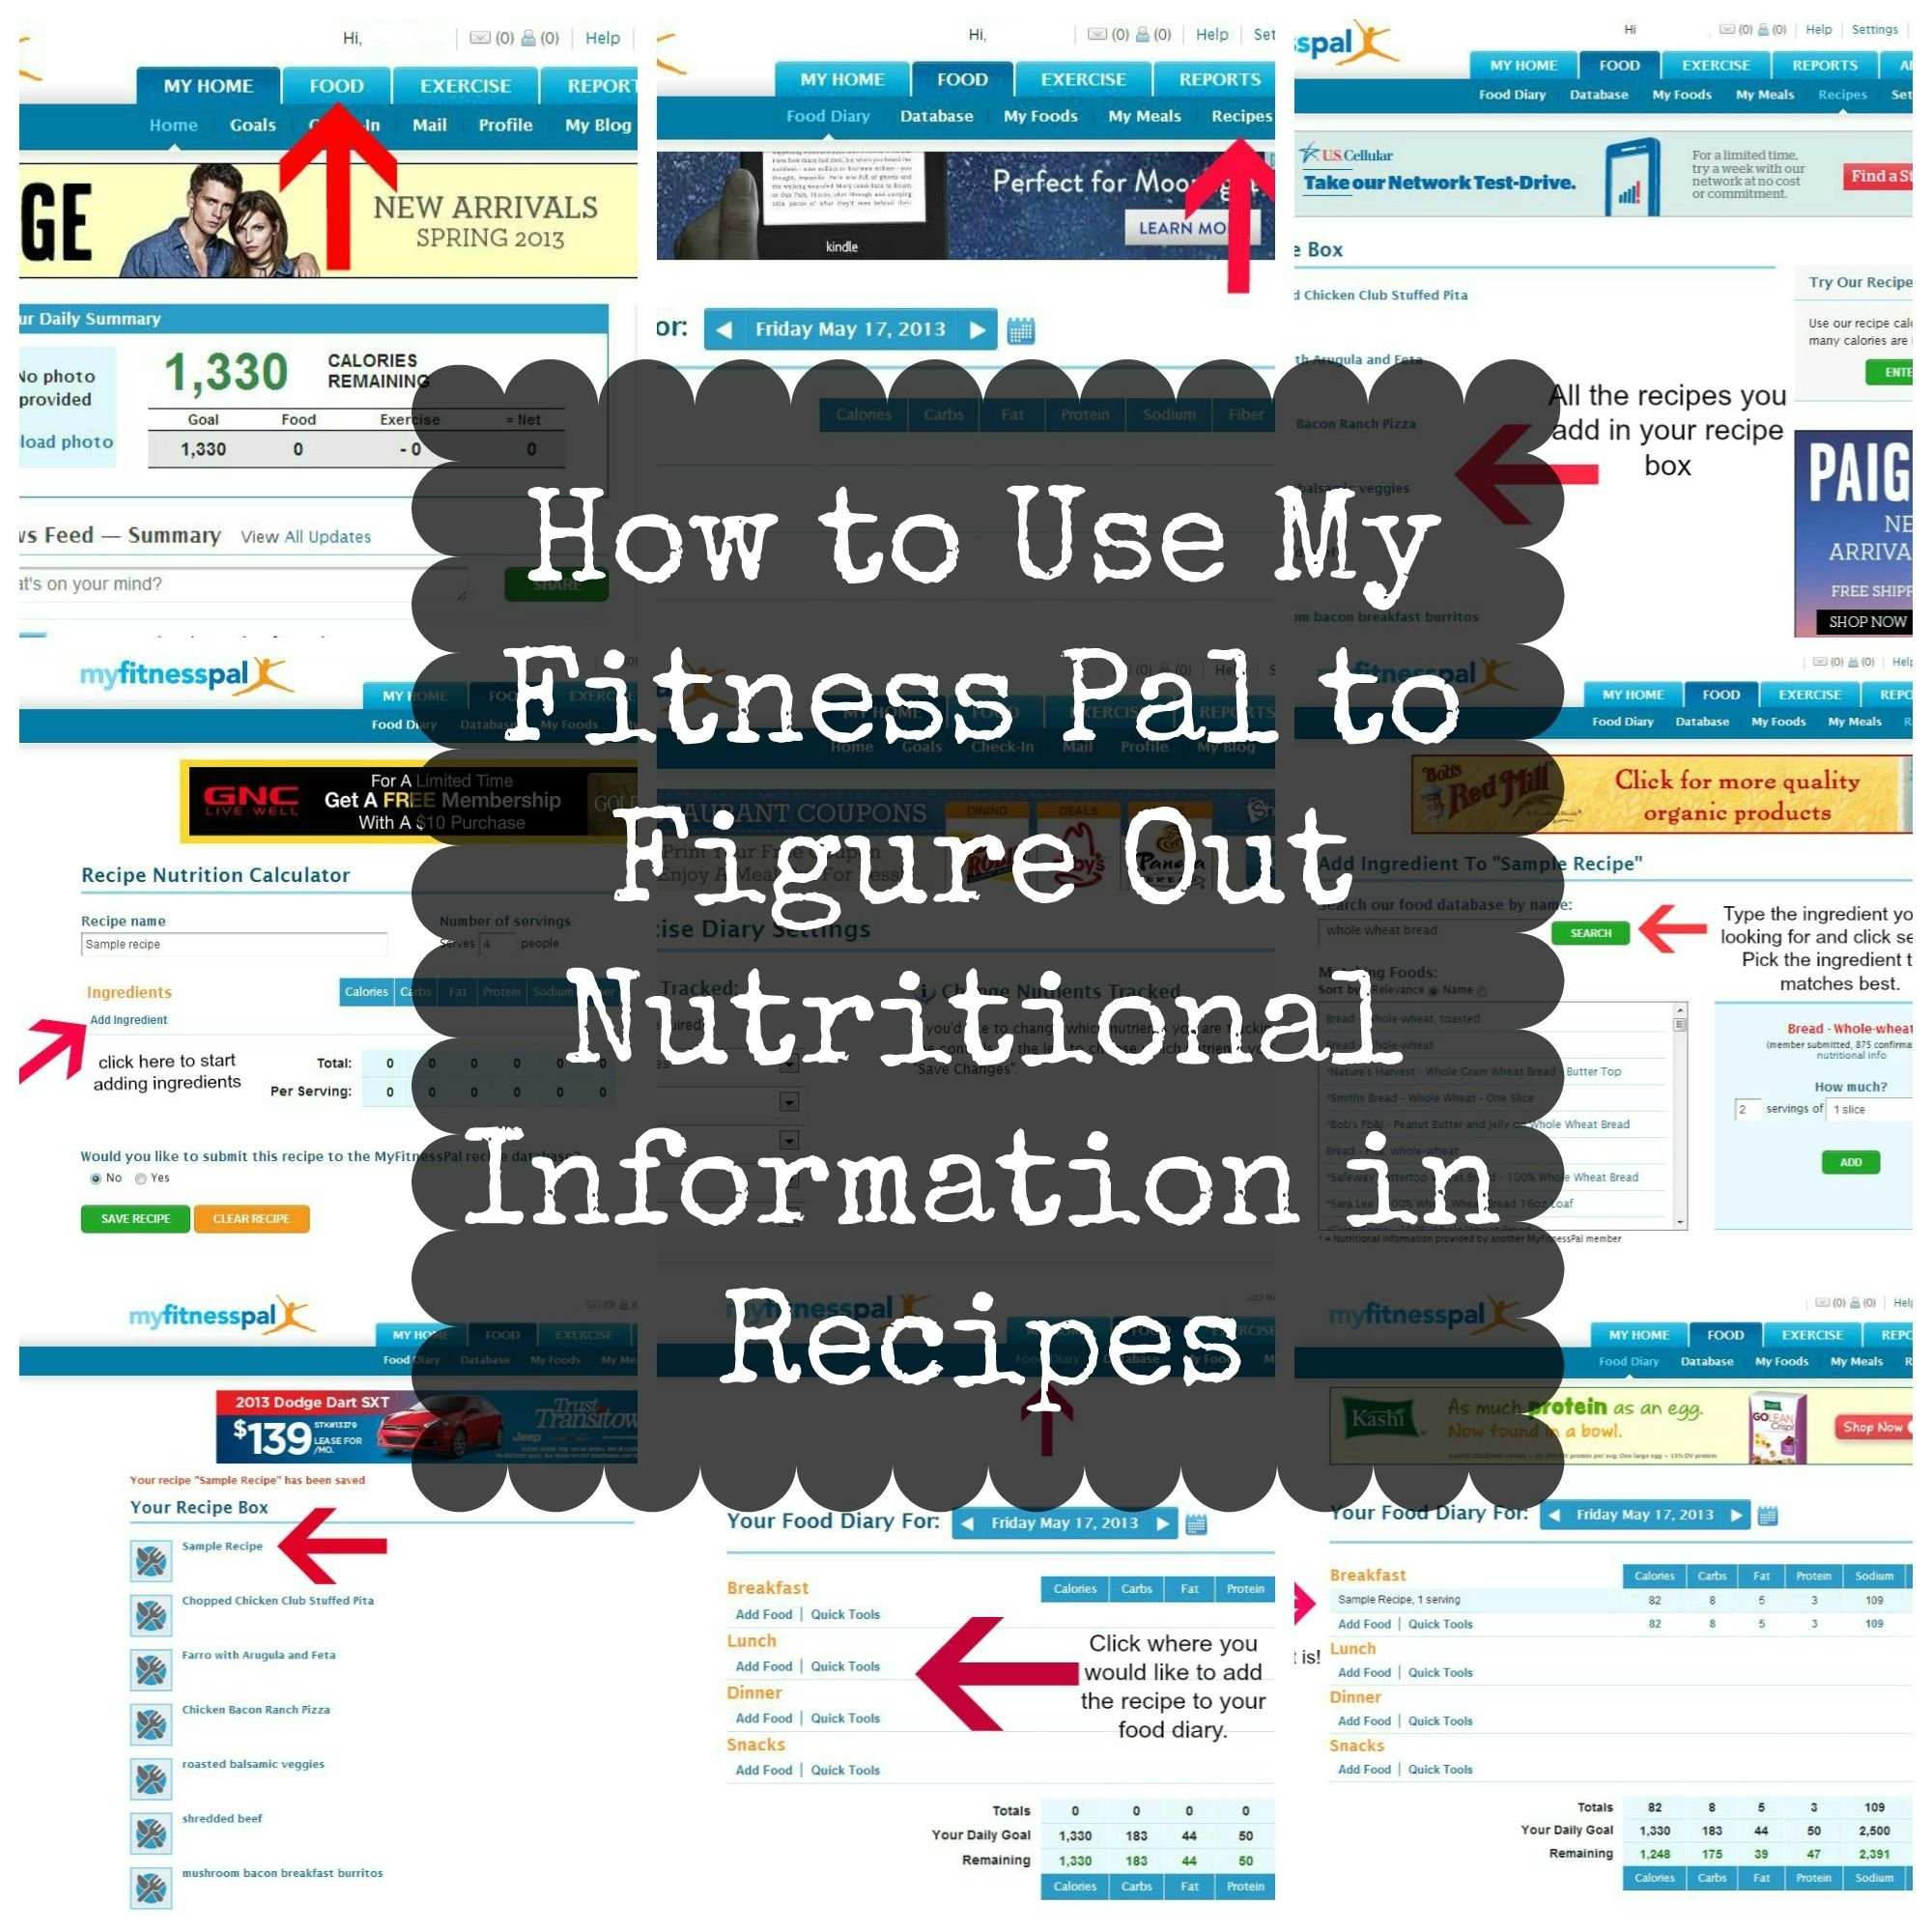 Food Recipe Calorie Calculator How To Use My Fitness Pal To Figure Out Nutritional